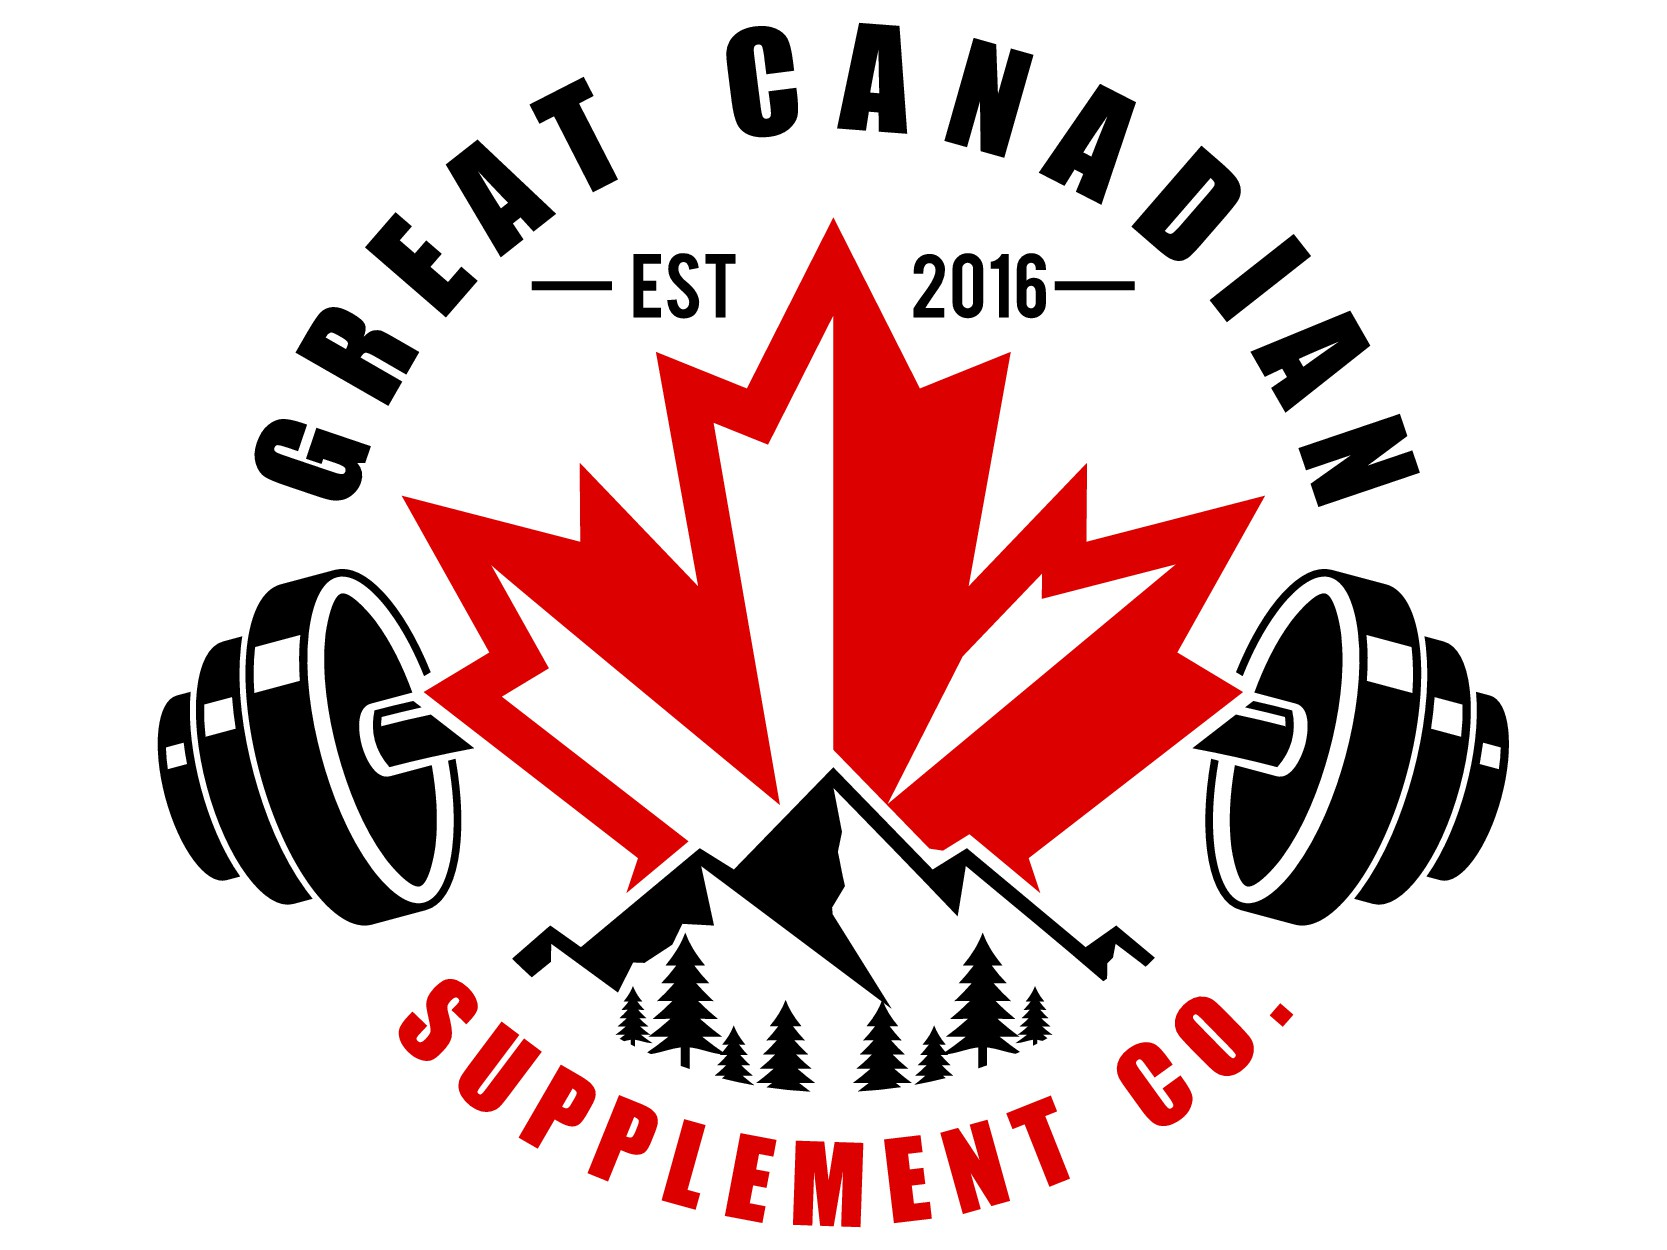 A supplement retailer that needs a Canadian and fitness oritented logo